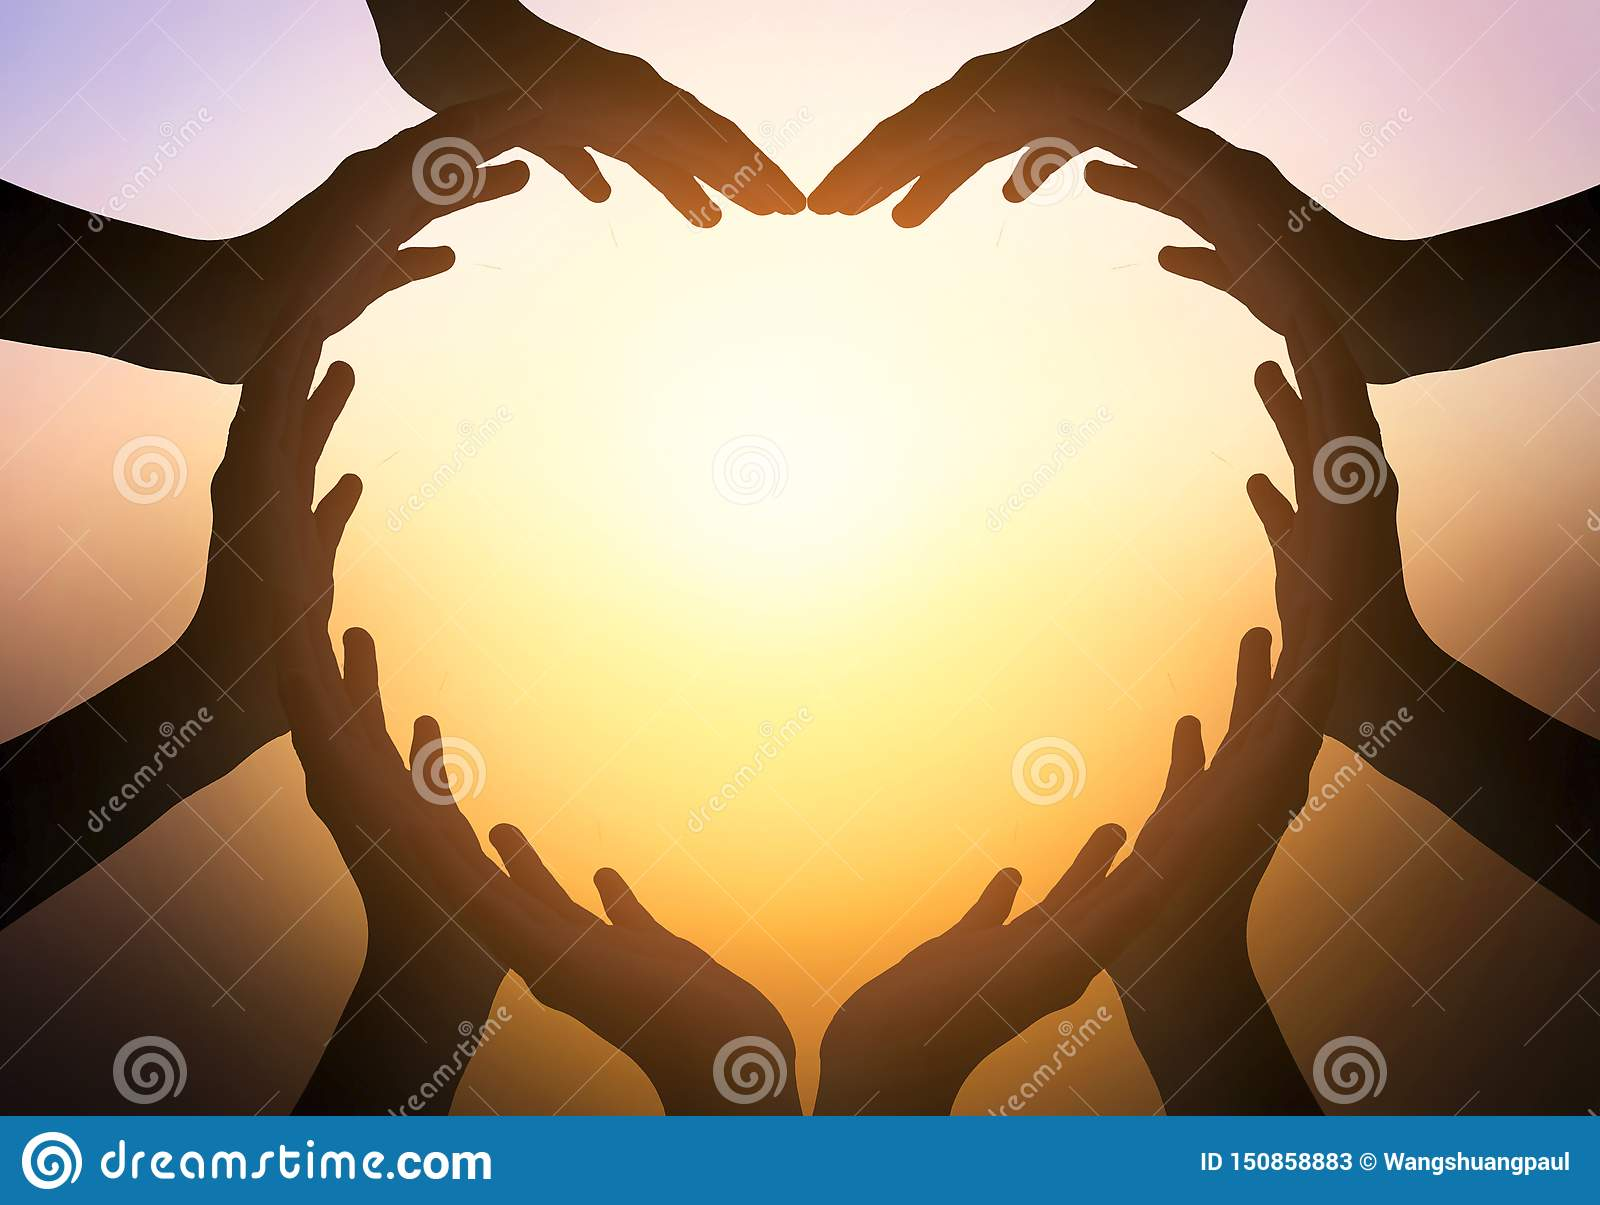 International Day of Friendship concept: hands in shape of heart on blurred background